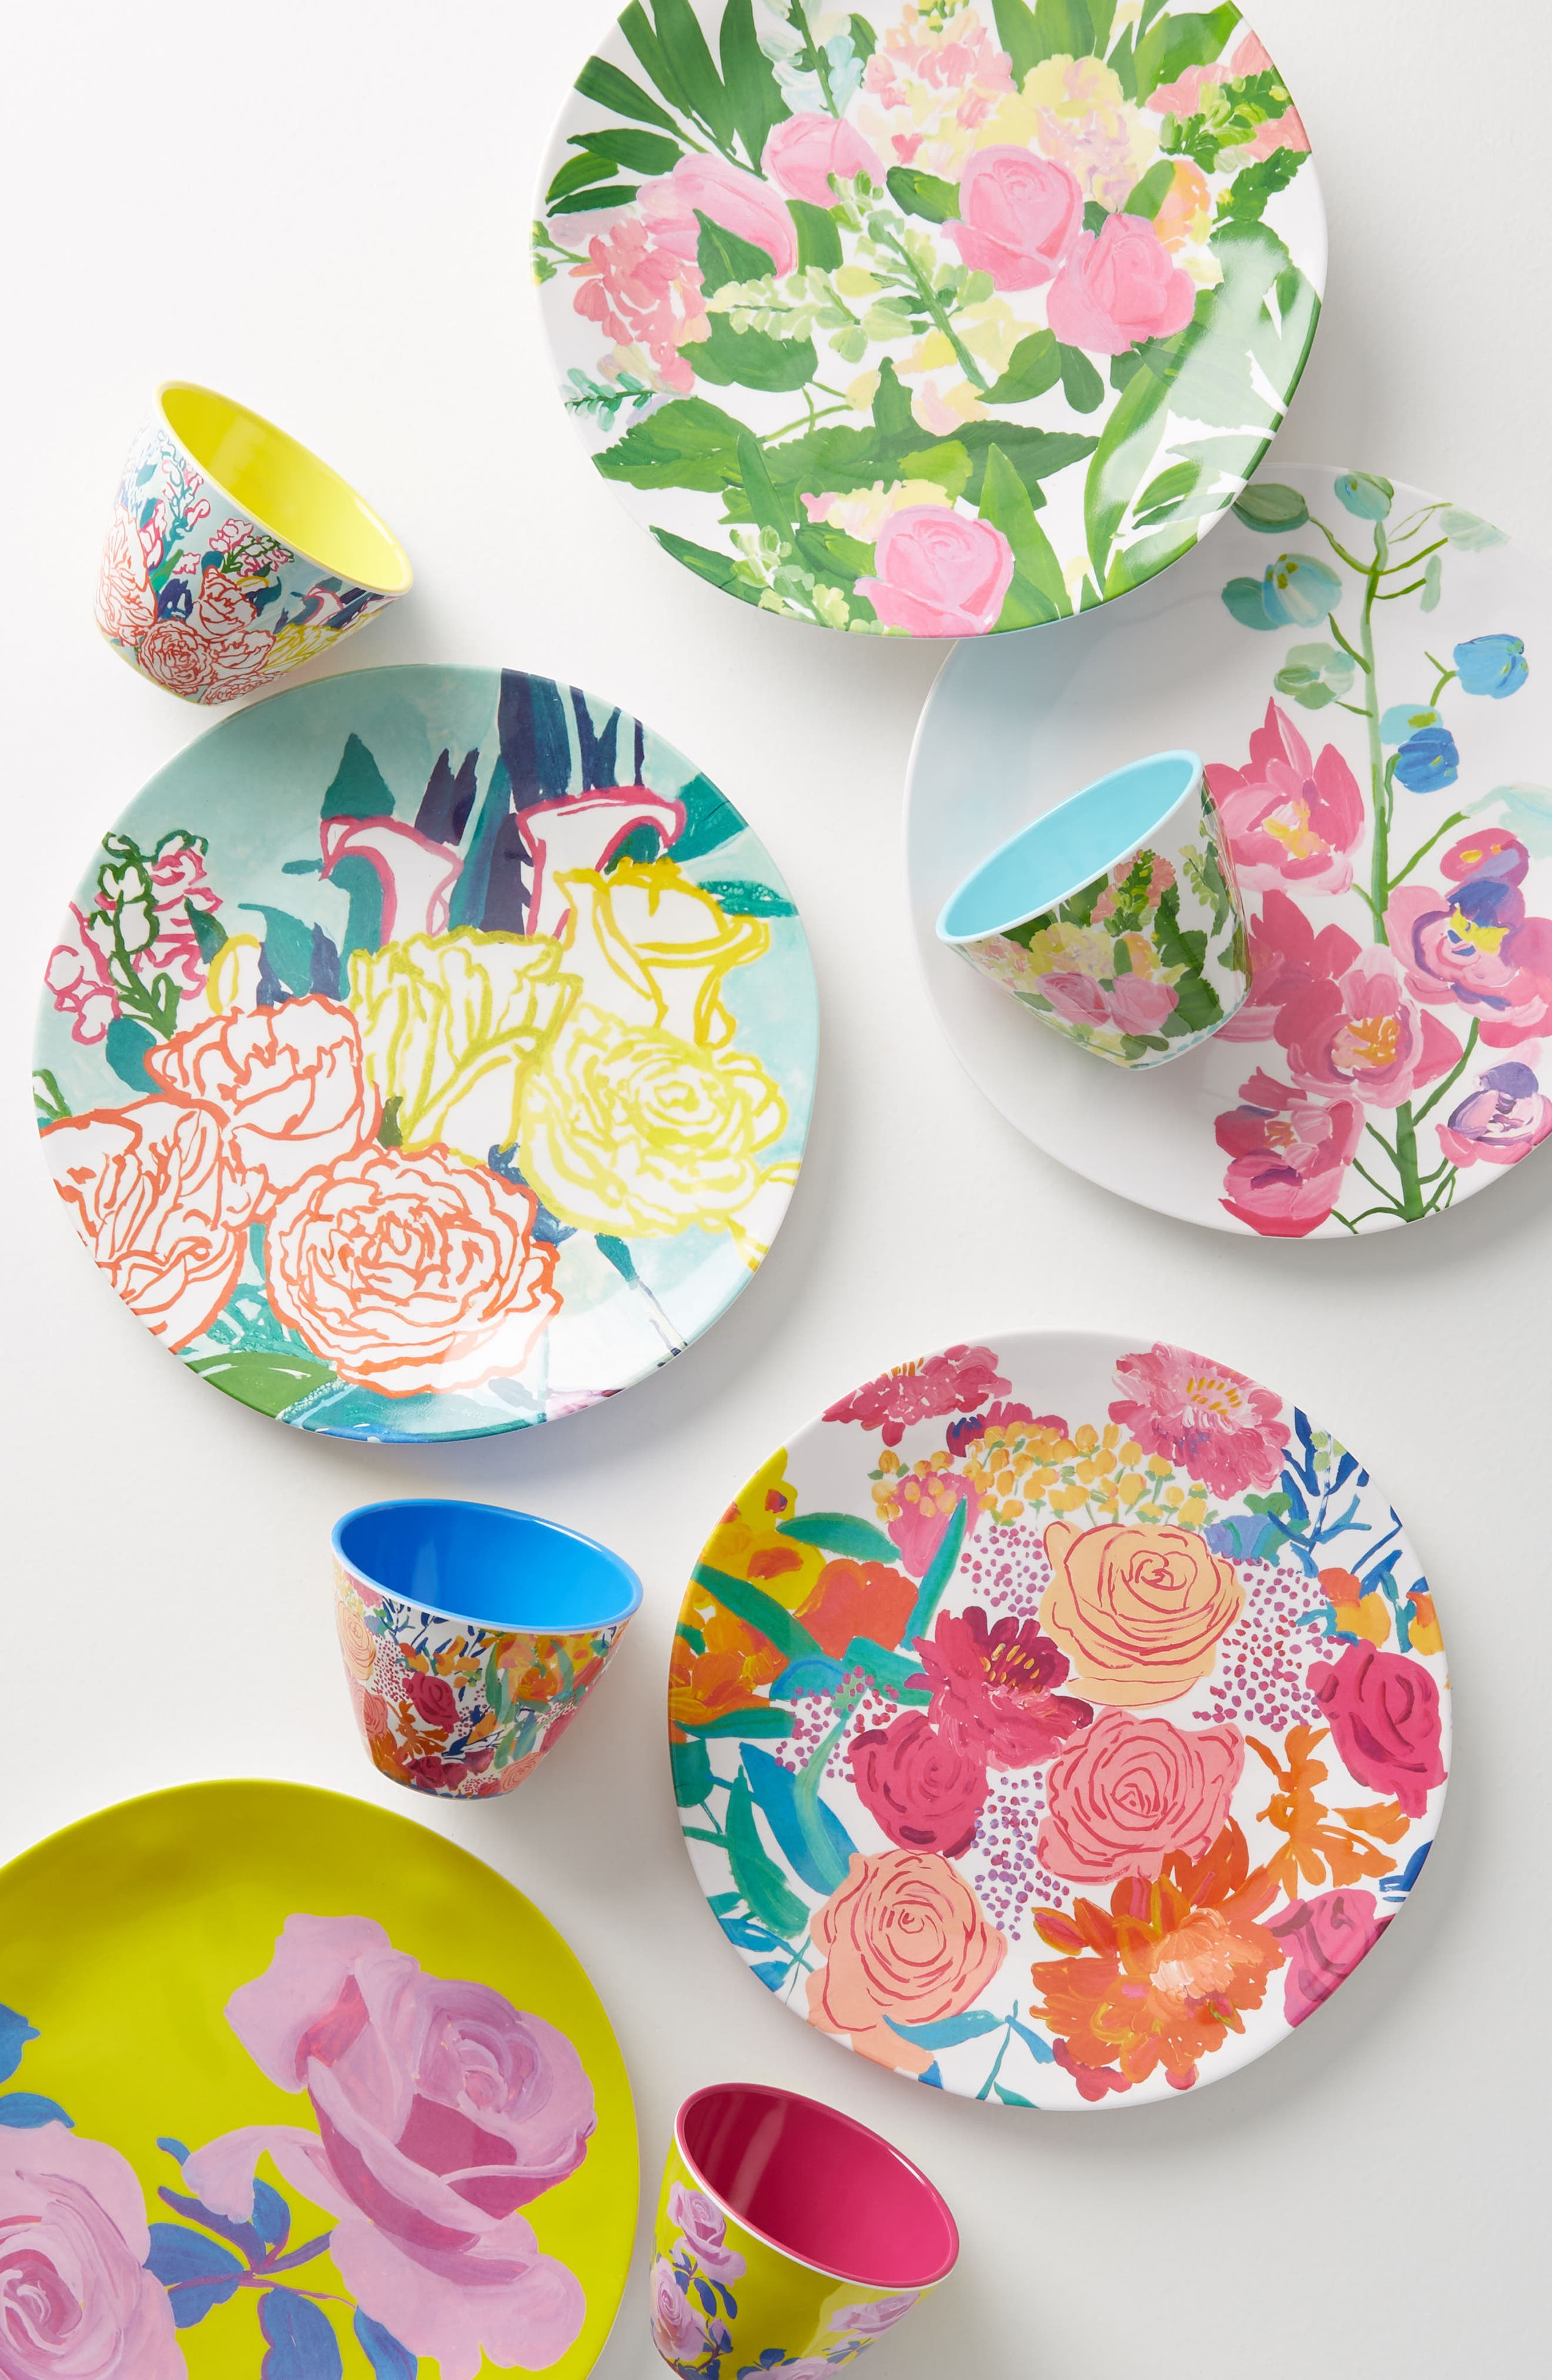 Paint + Petals Melamine Plate,                             Alternate thumbnail 3, color,                             Turquoise